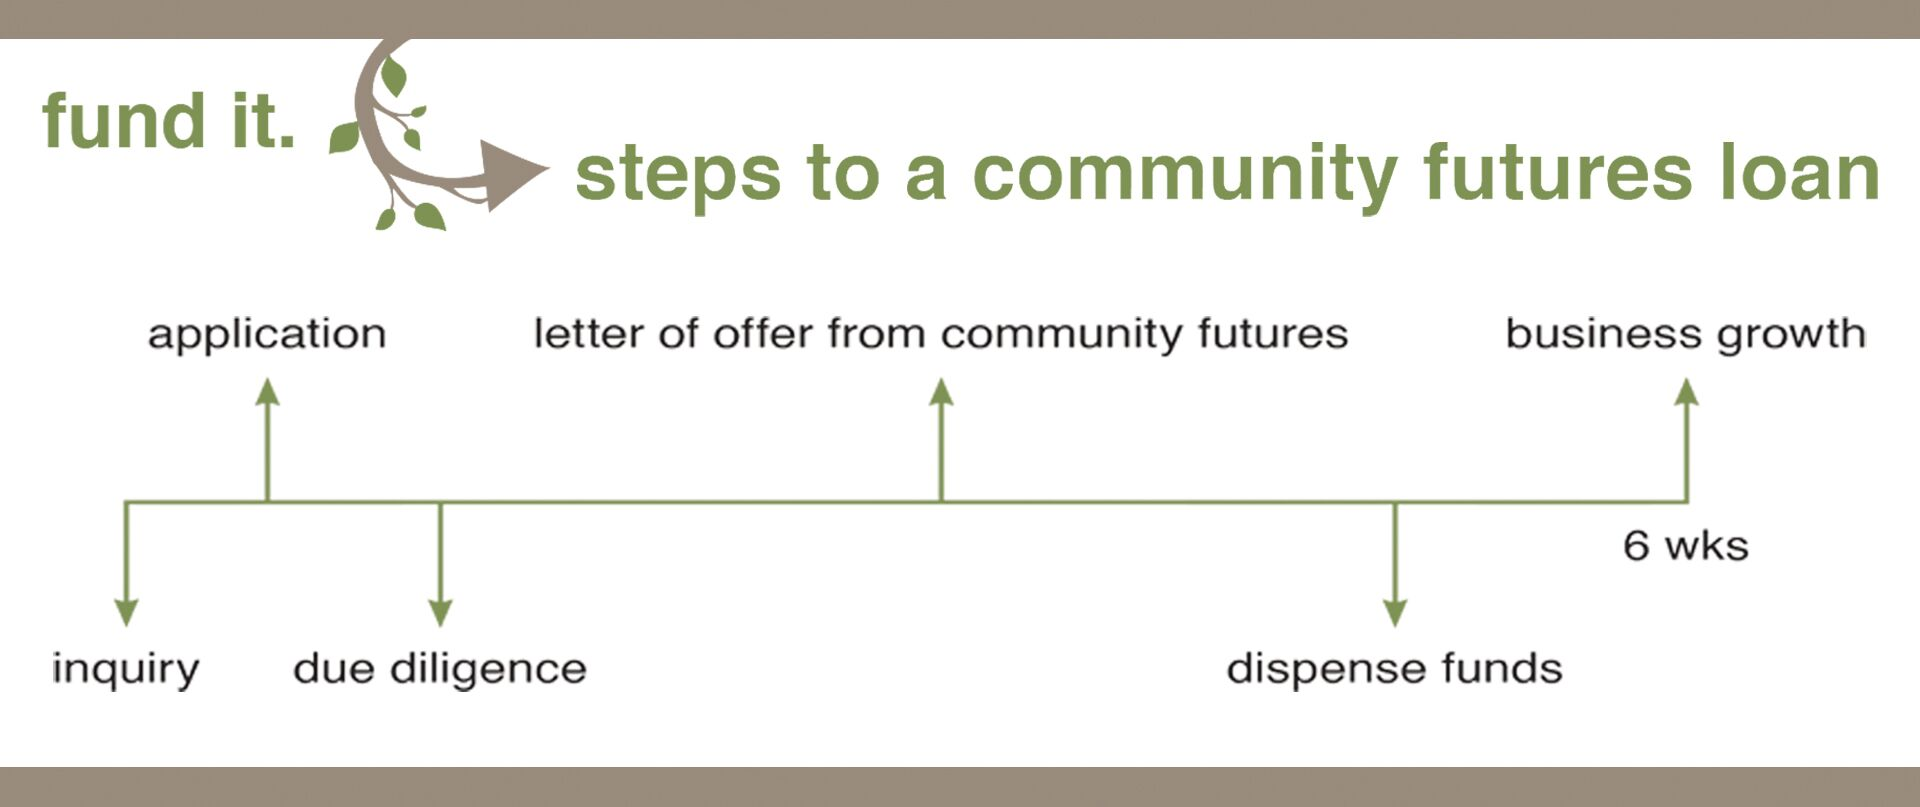 Community Futures loan process